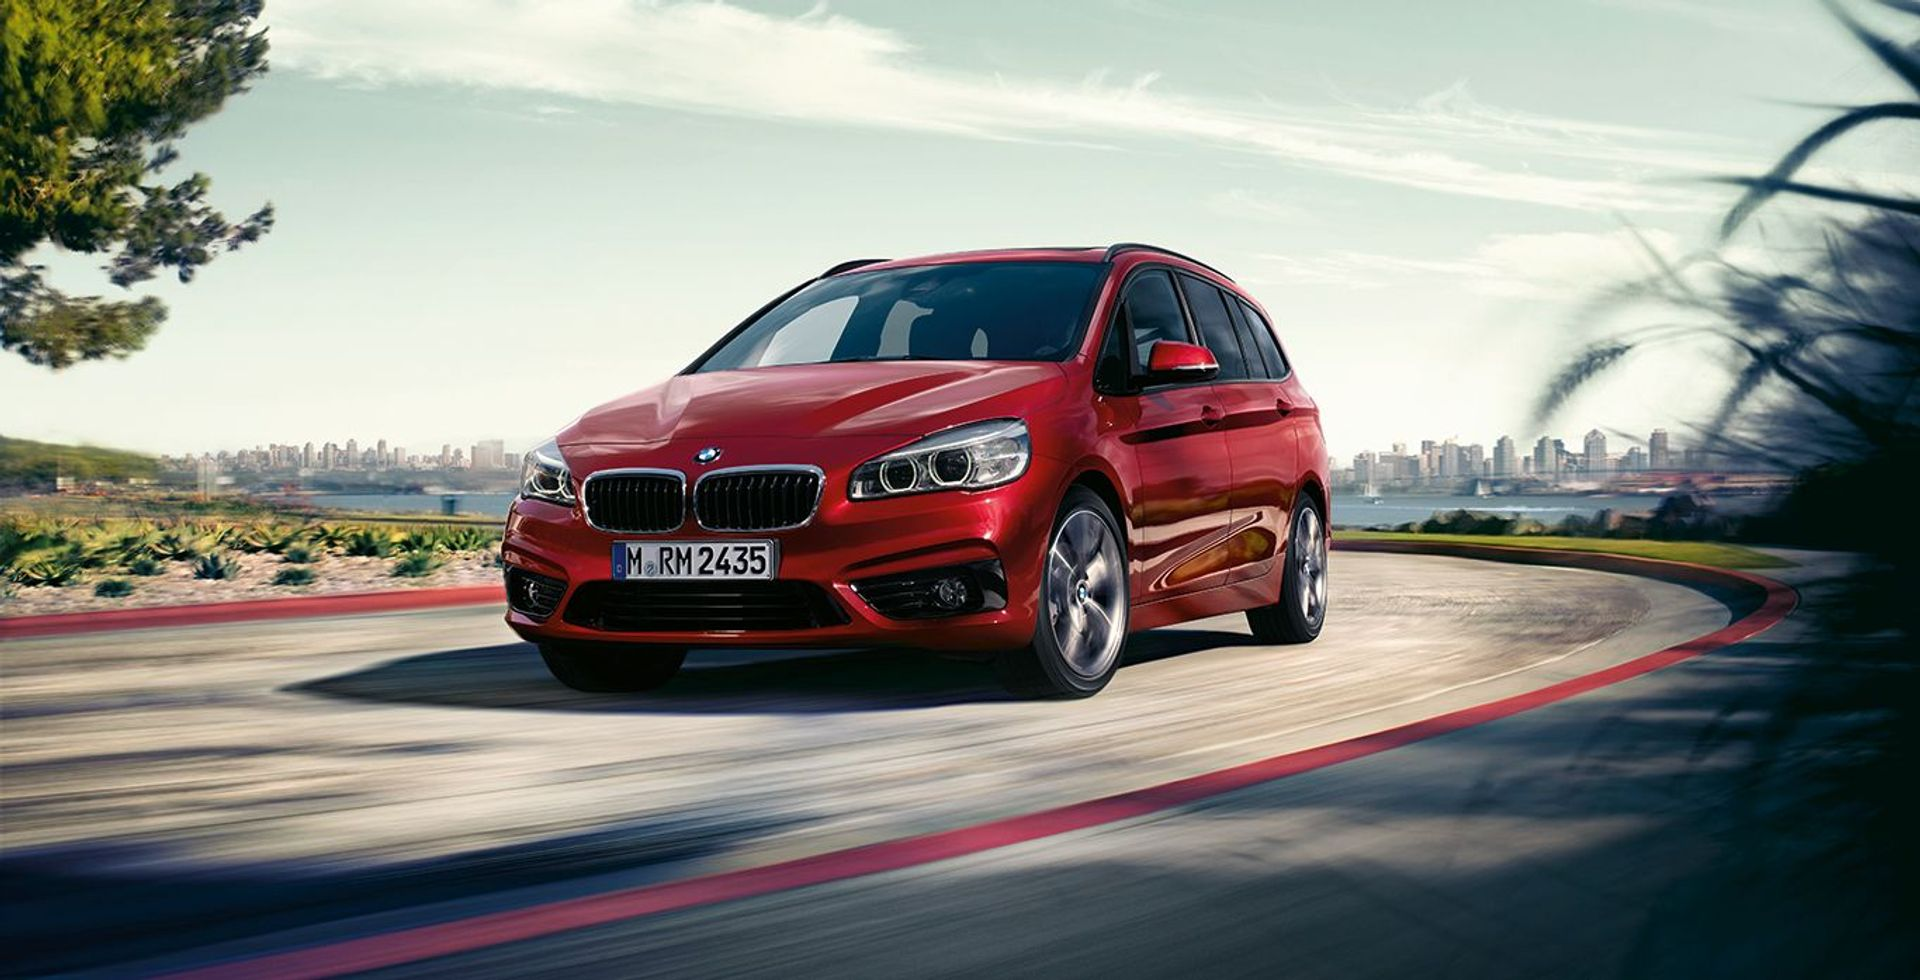 BMW 2 Series Gran Tourer 220d image